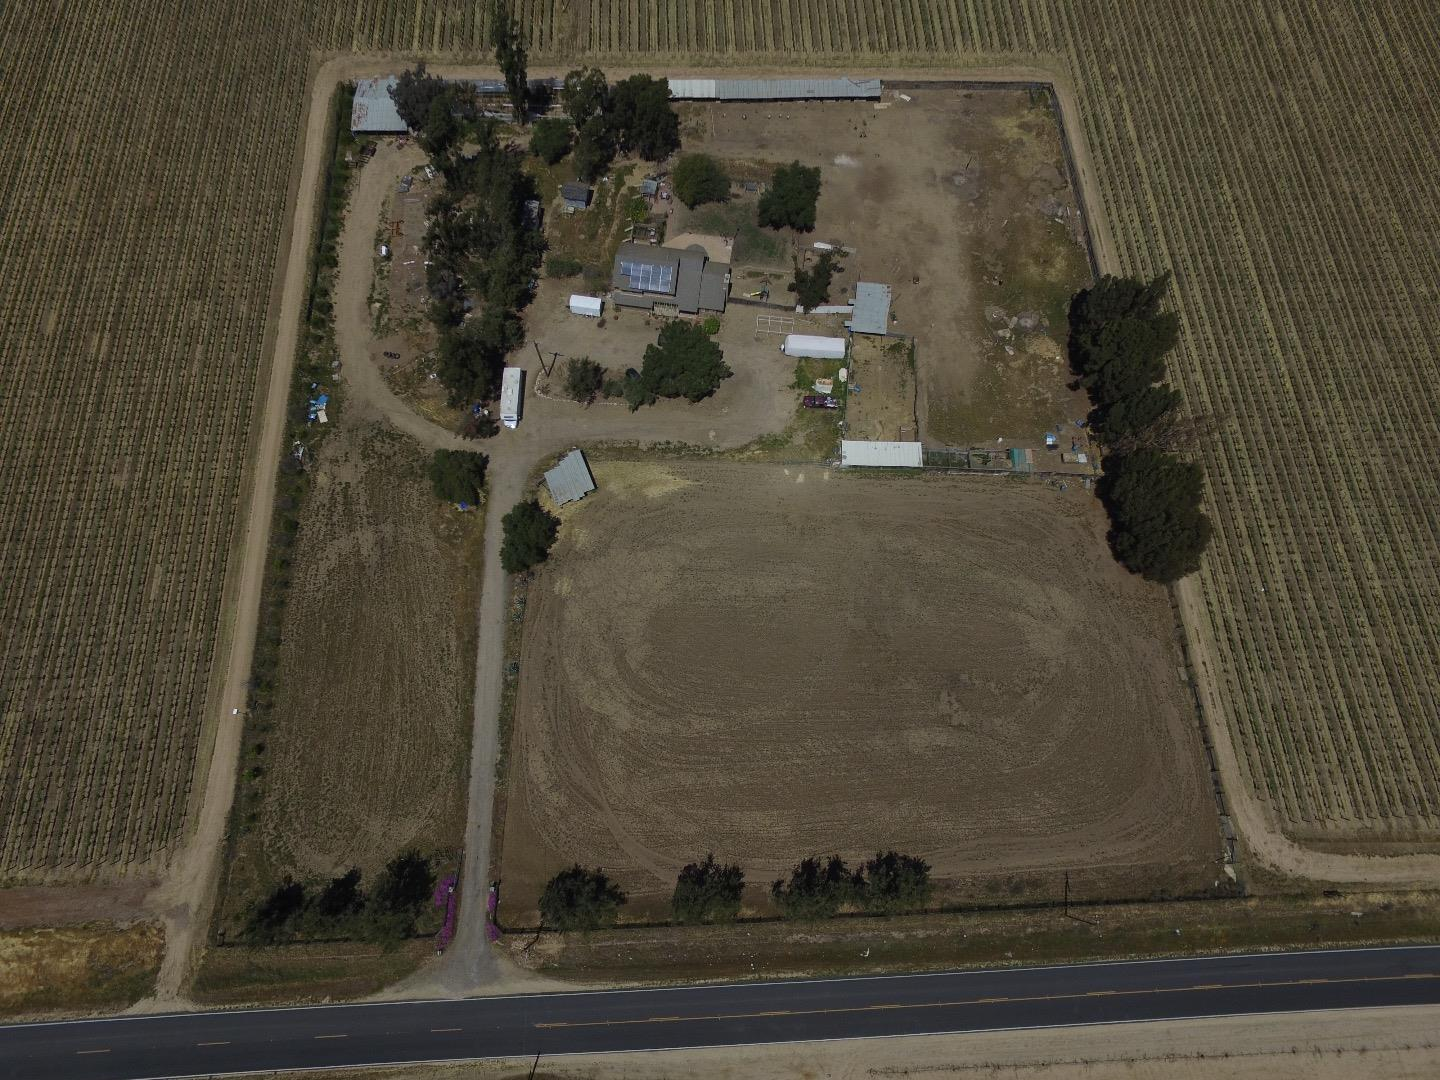 Single Family Home for Sale at 34509 Metz Road 34509 Metz Road Soledad, California 93960 United States